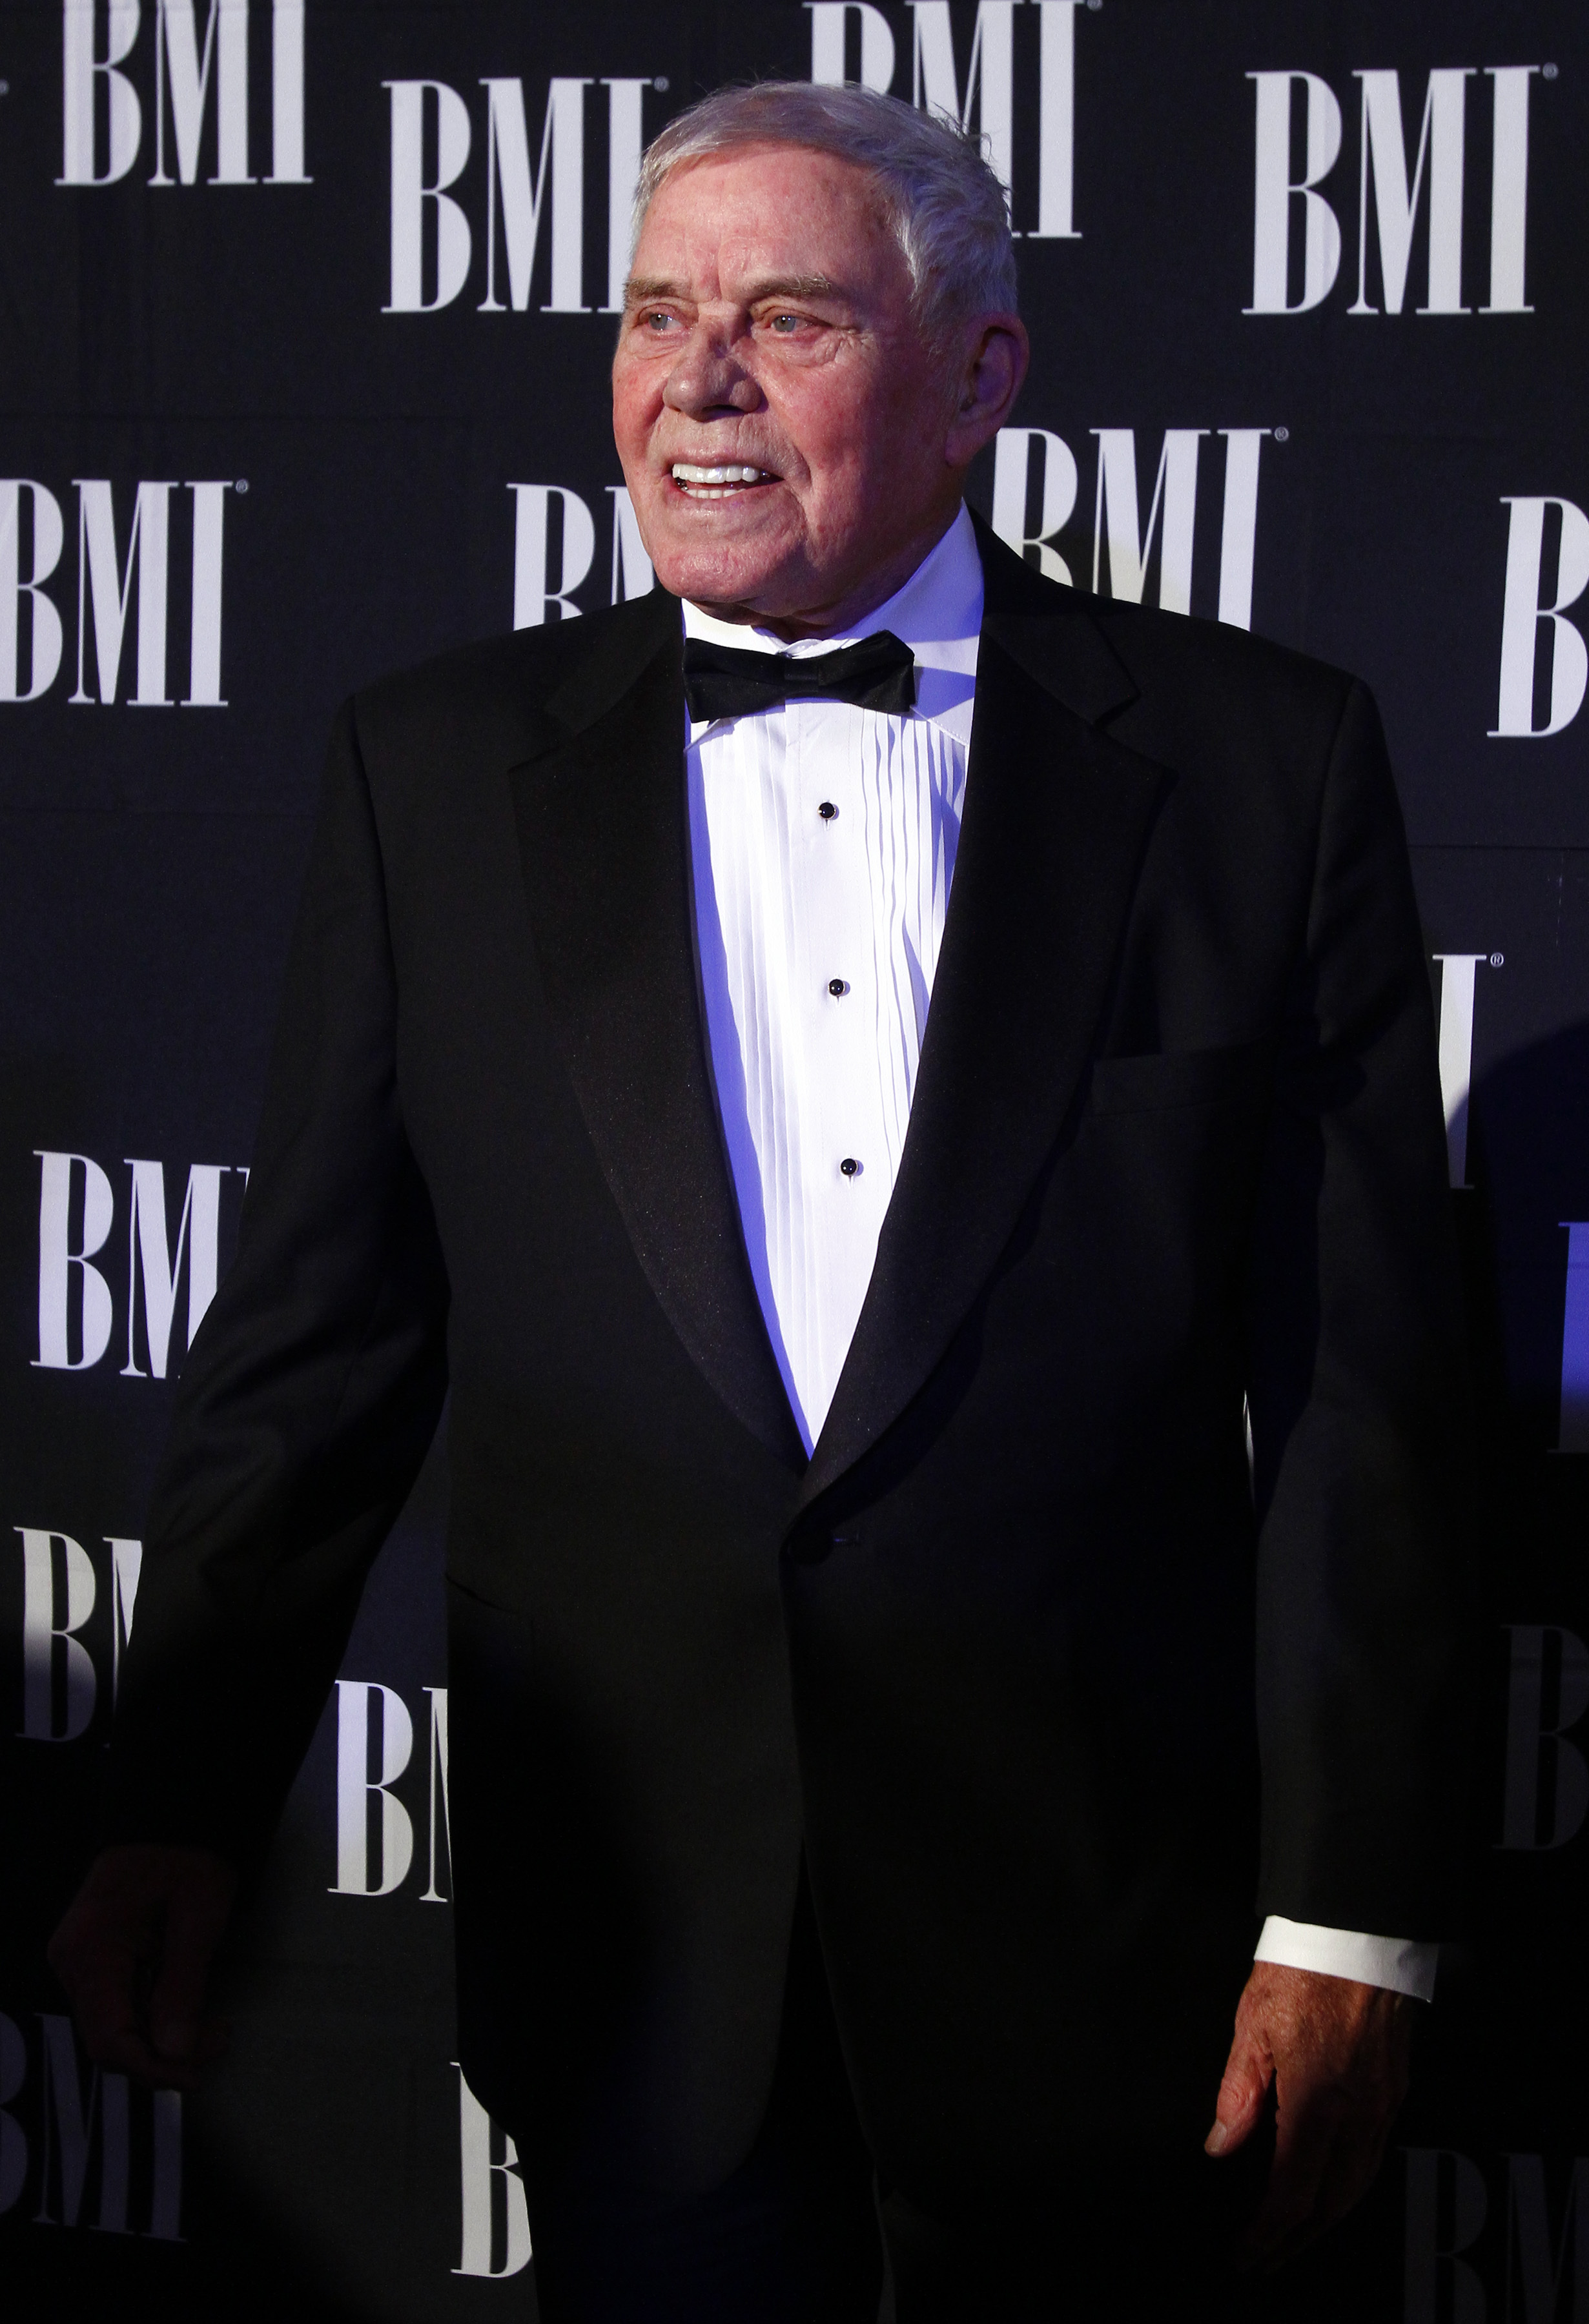 FILE - In this Oct. 30, 2012 file photo, Tom T. Hall arrives at the 60th Annual BMI Country Awards in Nashville, Tenn. Missy Elliott is making history as the first female rapper inducted into the Songwriters Hall of Fame, whose 2019 class also includes legendary British singer Cat Stevens and country-folk icon John Prine, as well as songwriter Hall, and others announced Saturday, Jan. 12, 2019, by the organization. (Photo by Wade Payne/Invision/AP, File)